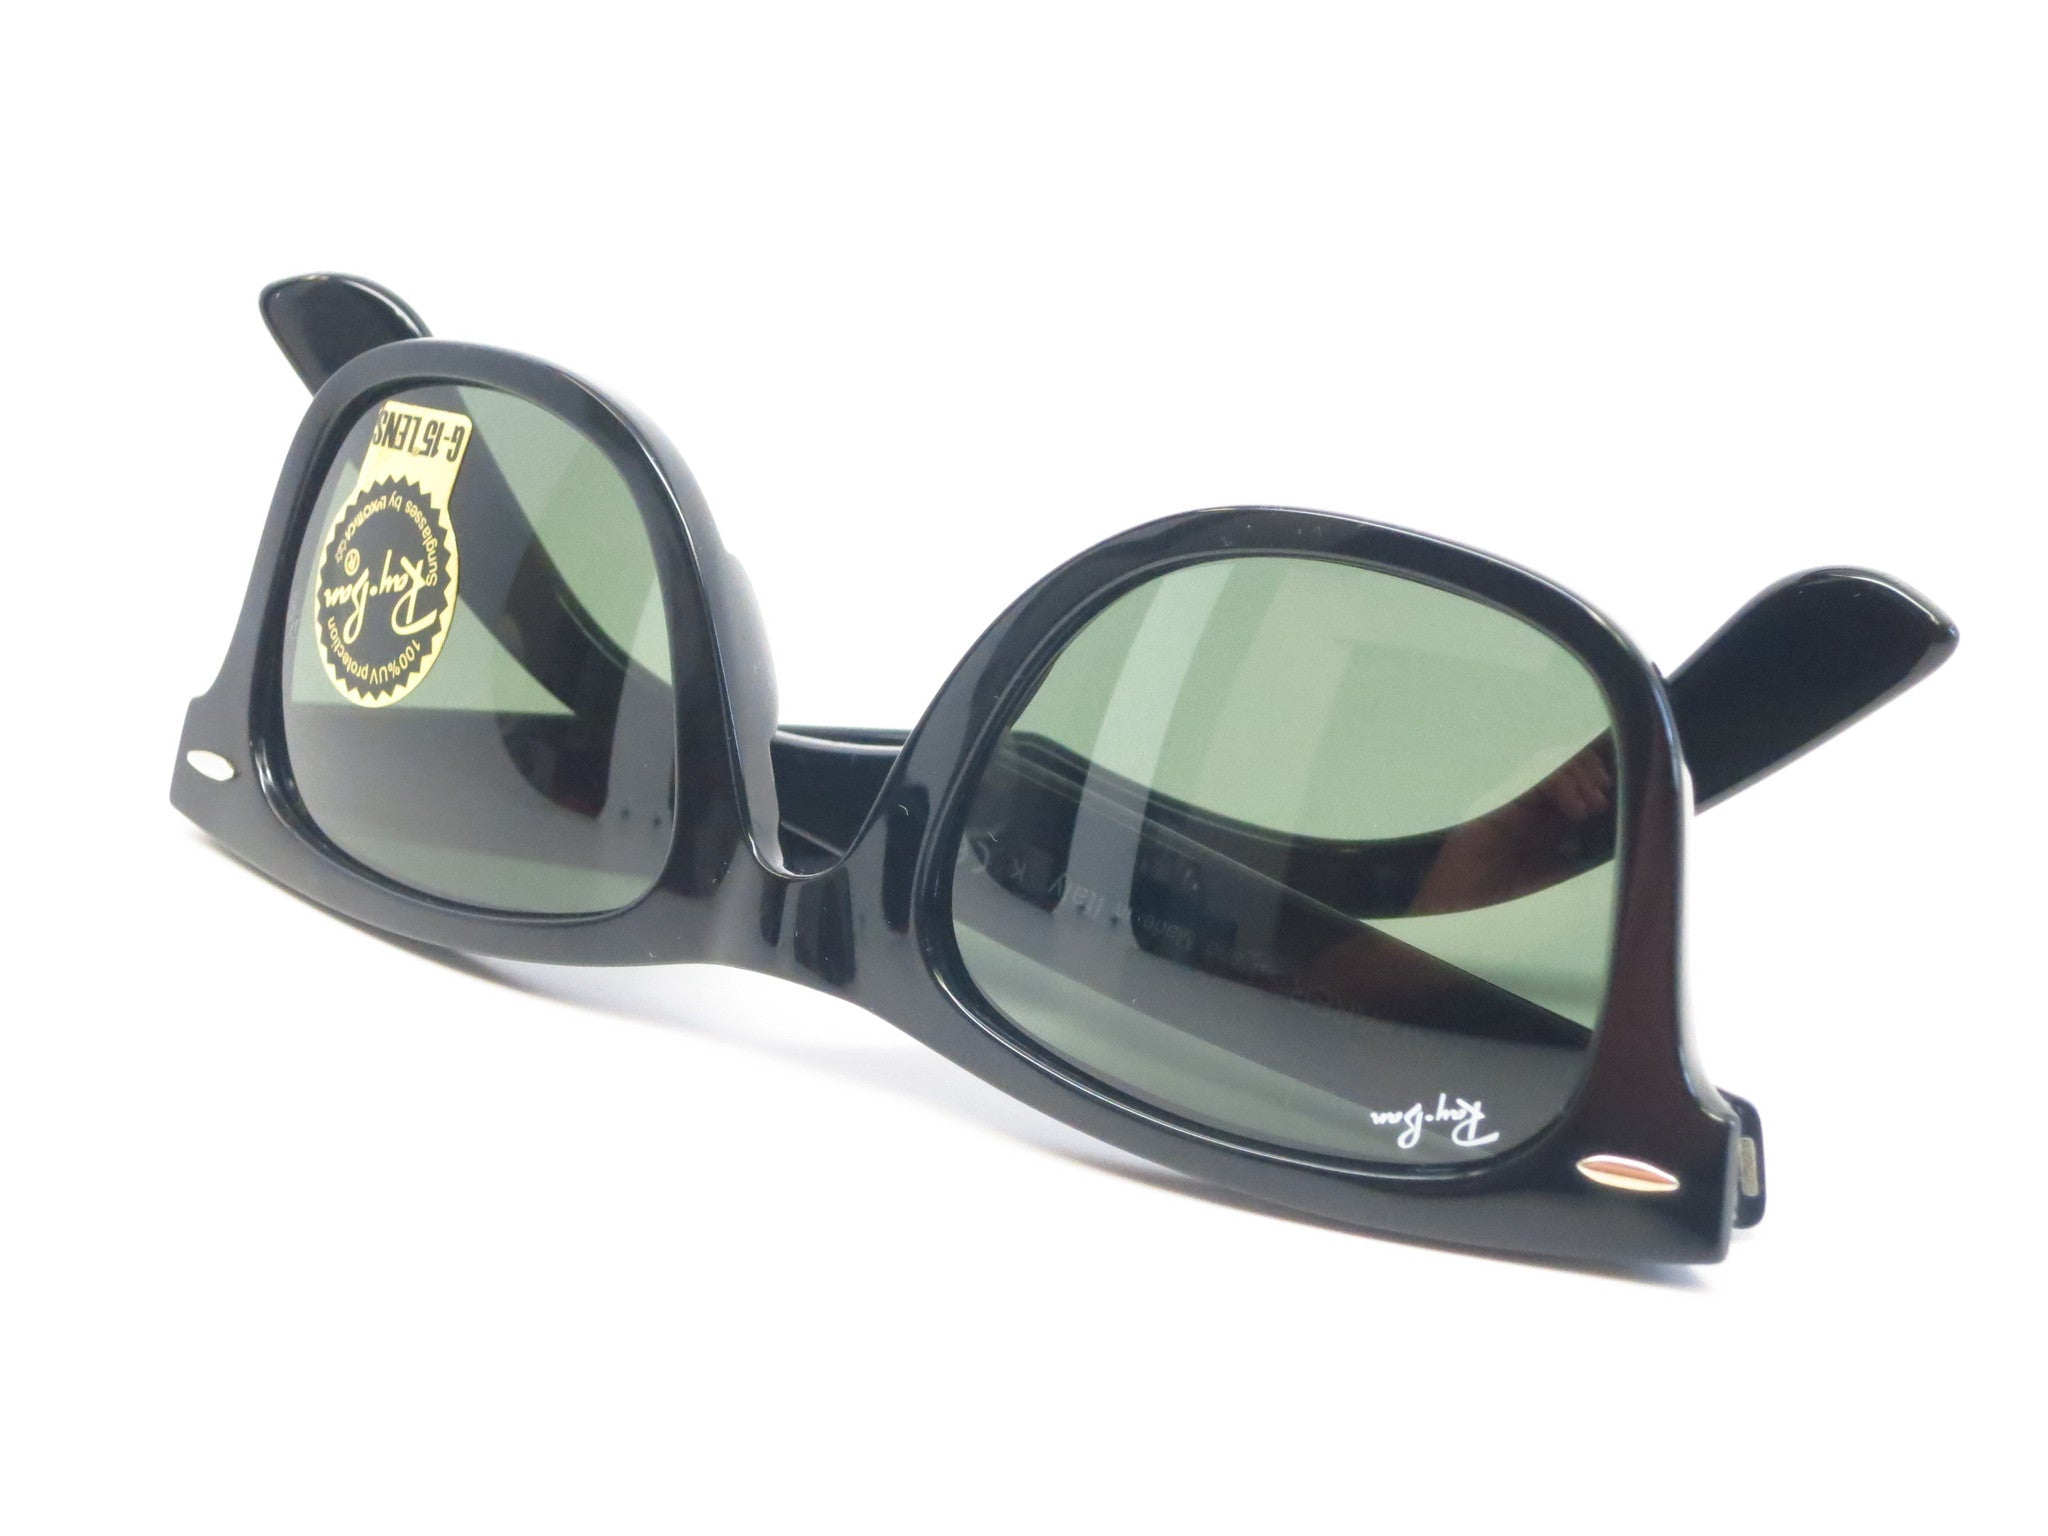 ray ban original wayfarer polarized cpwt  ray-ban wayfarer 2140 size comparison  50mm vs 54mm